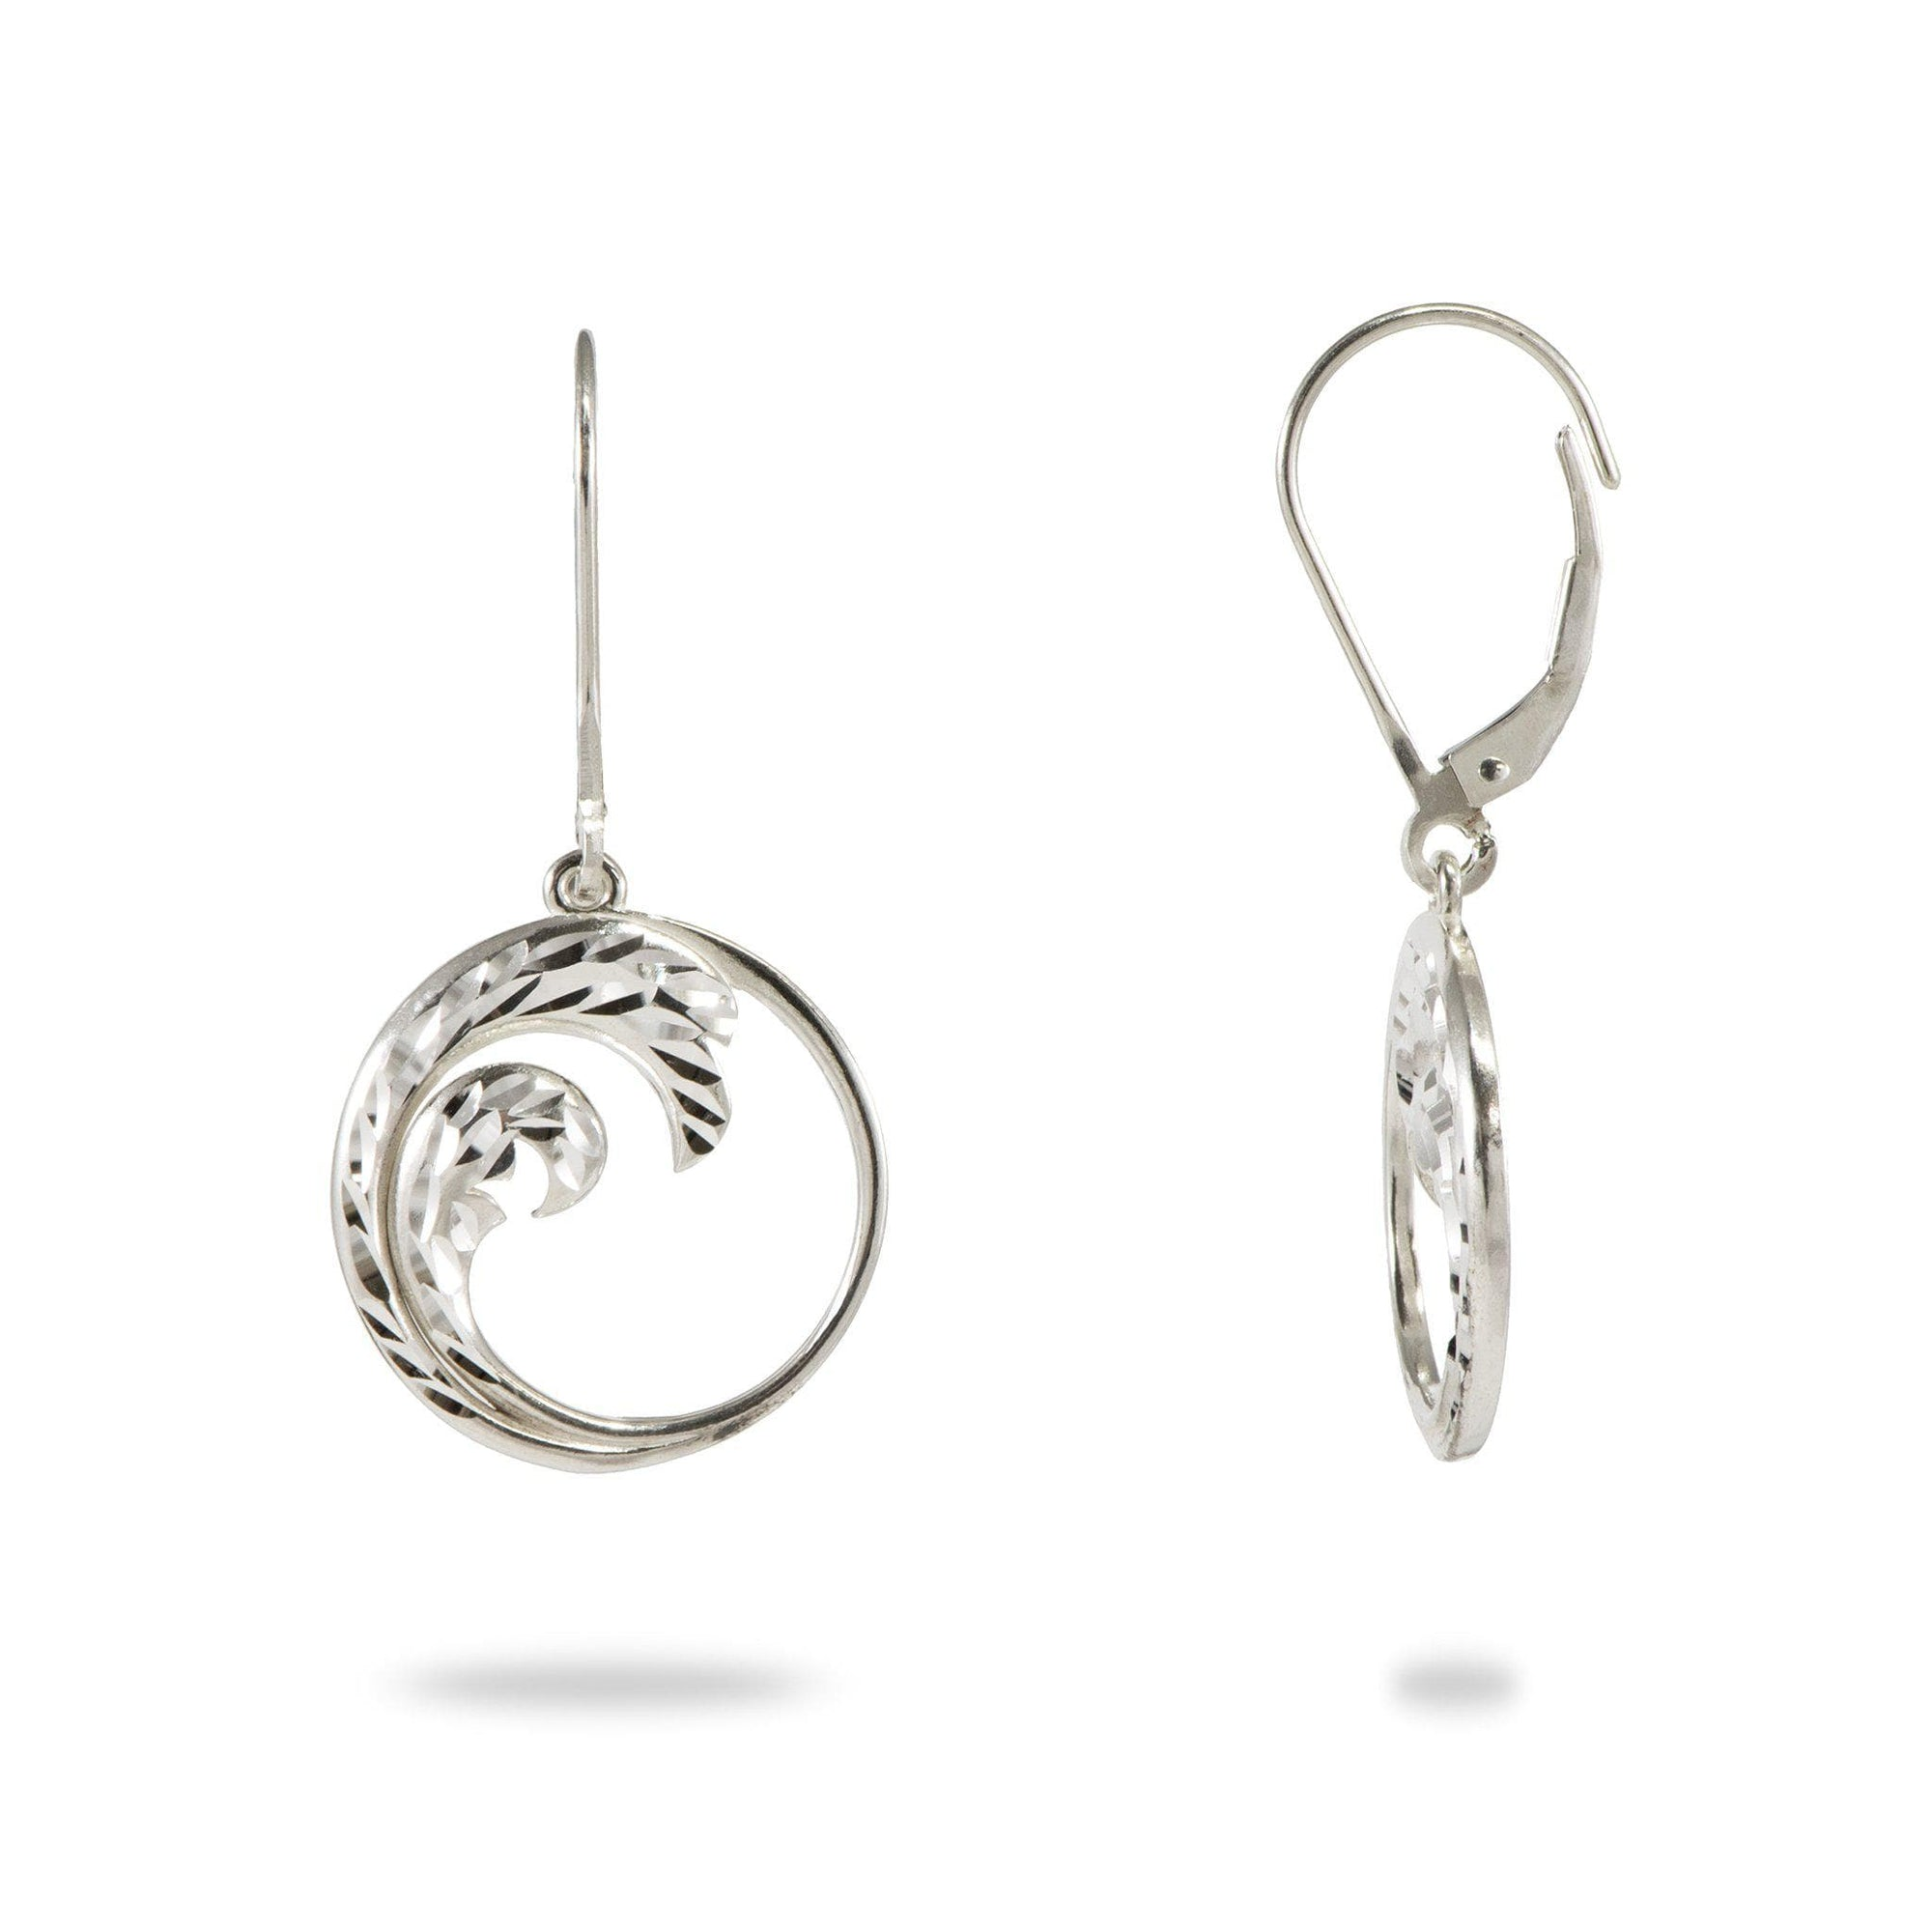 Nalu Earrings in Sterling Silver - 37mm-[SKU]